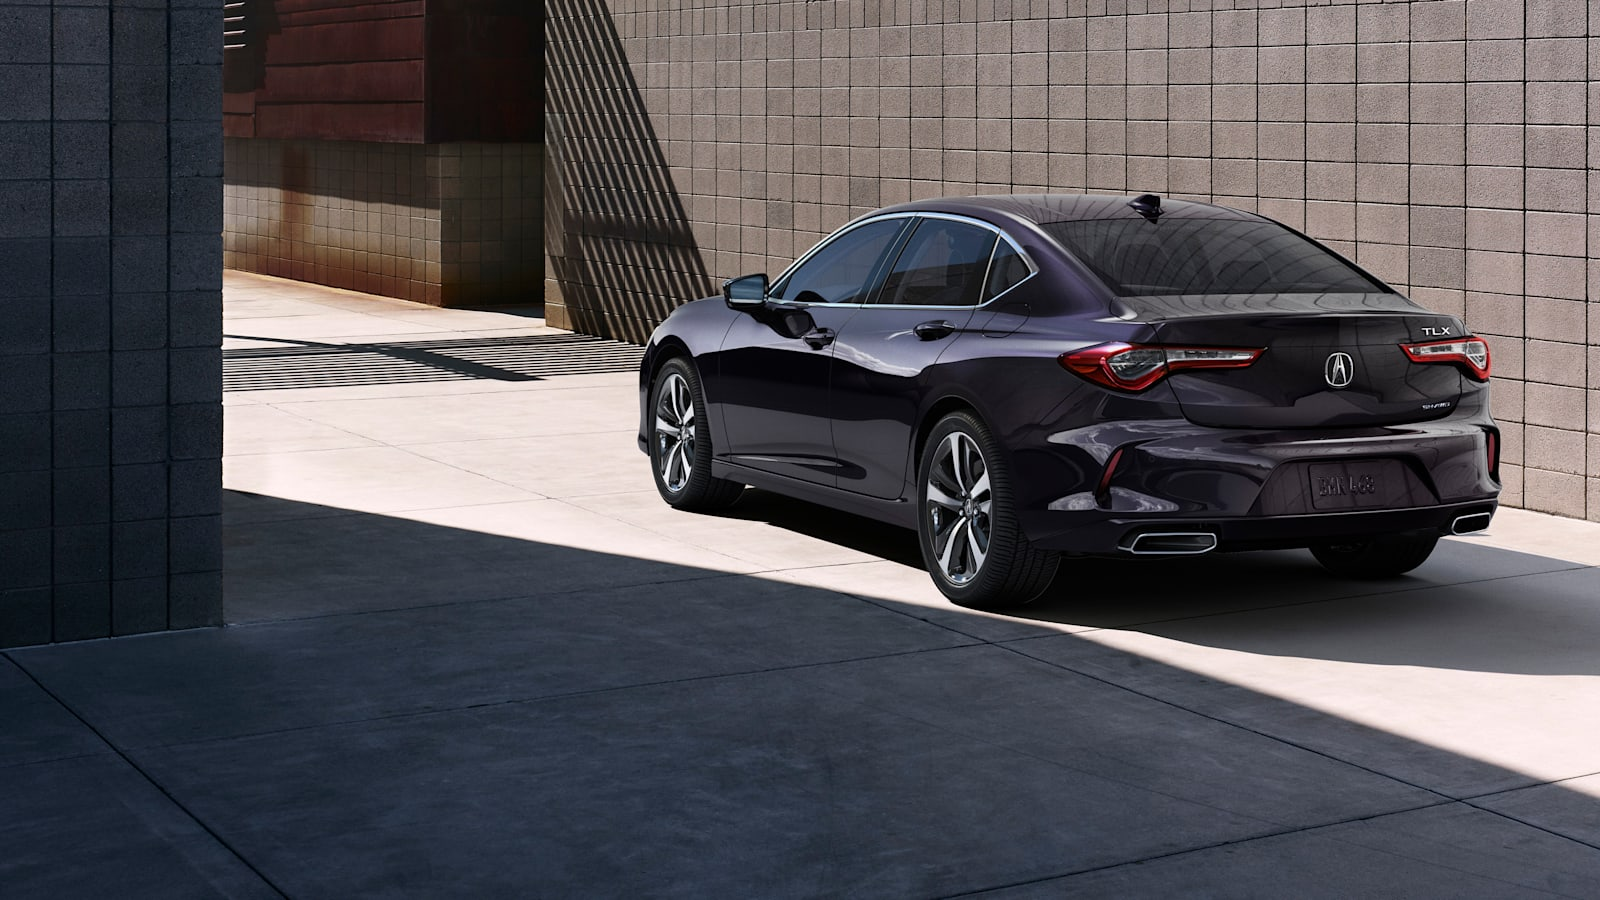 2021 acura tlx sedan priced from 38525 type s due next